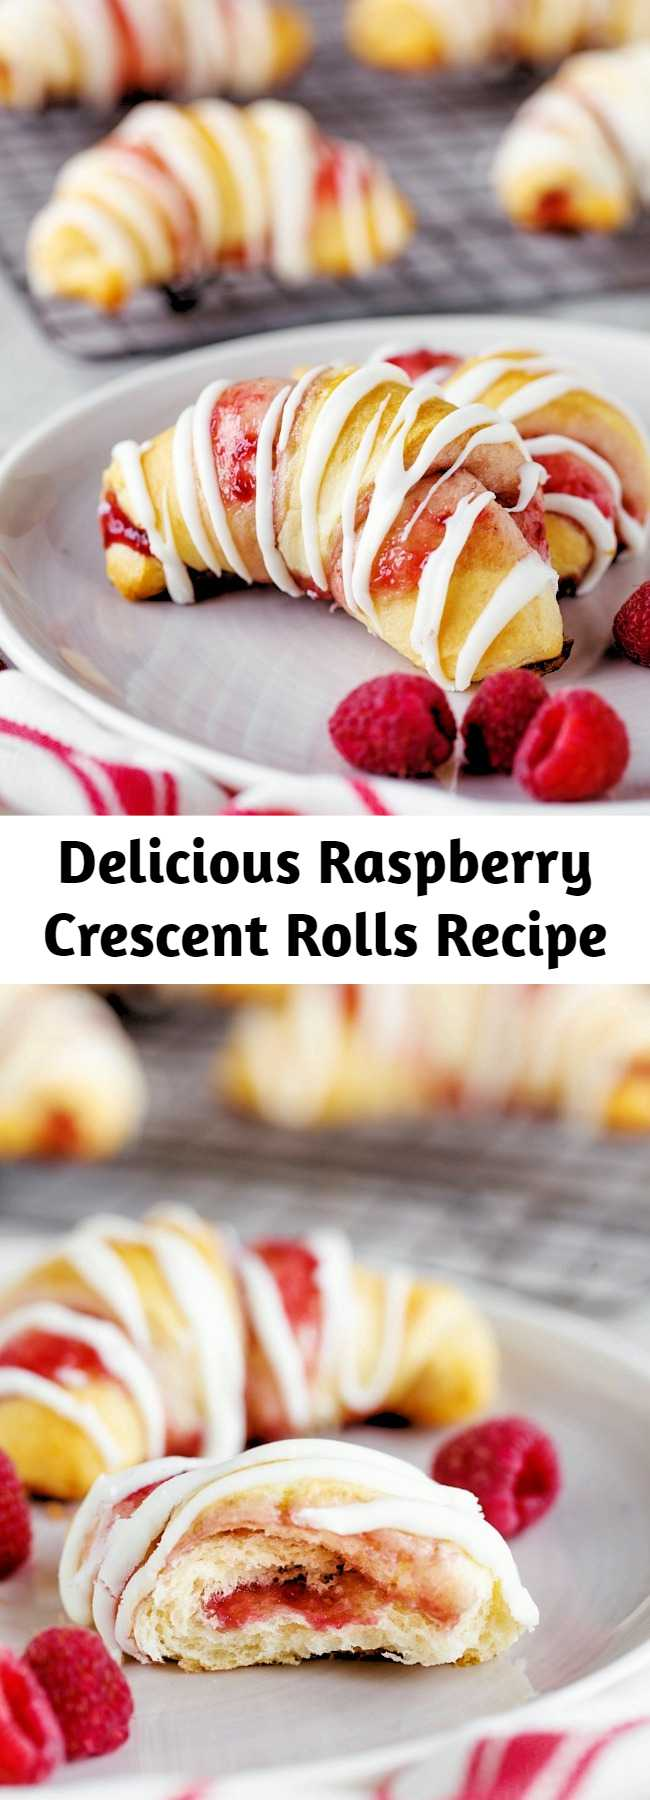 Delicious Raspberry Crescent Rolls Recipe - Raspberry Crescent Rolls: a delicious sweet dessert that is quick to prepare and uses pre-made crescent rolls and delicious raspberry jam. #desserts #sweettreat